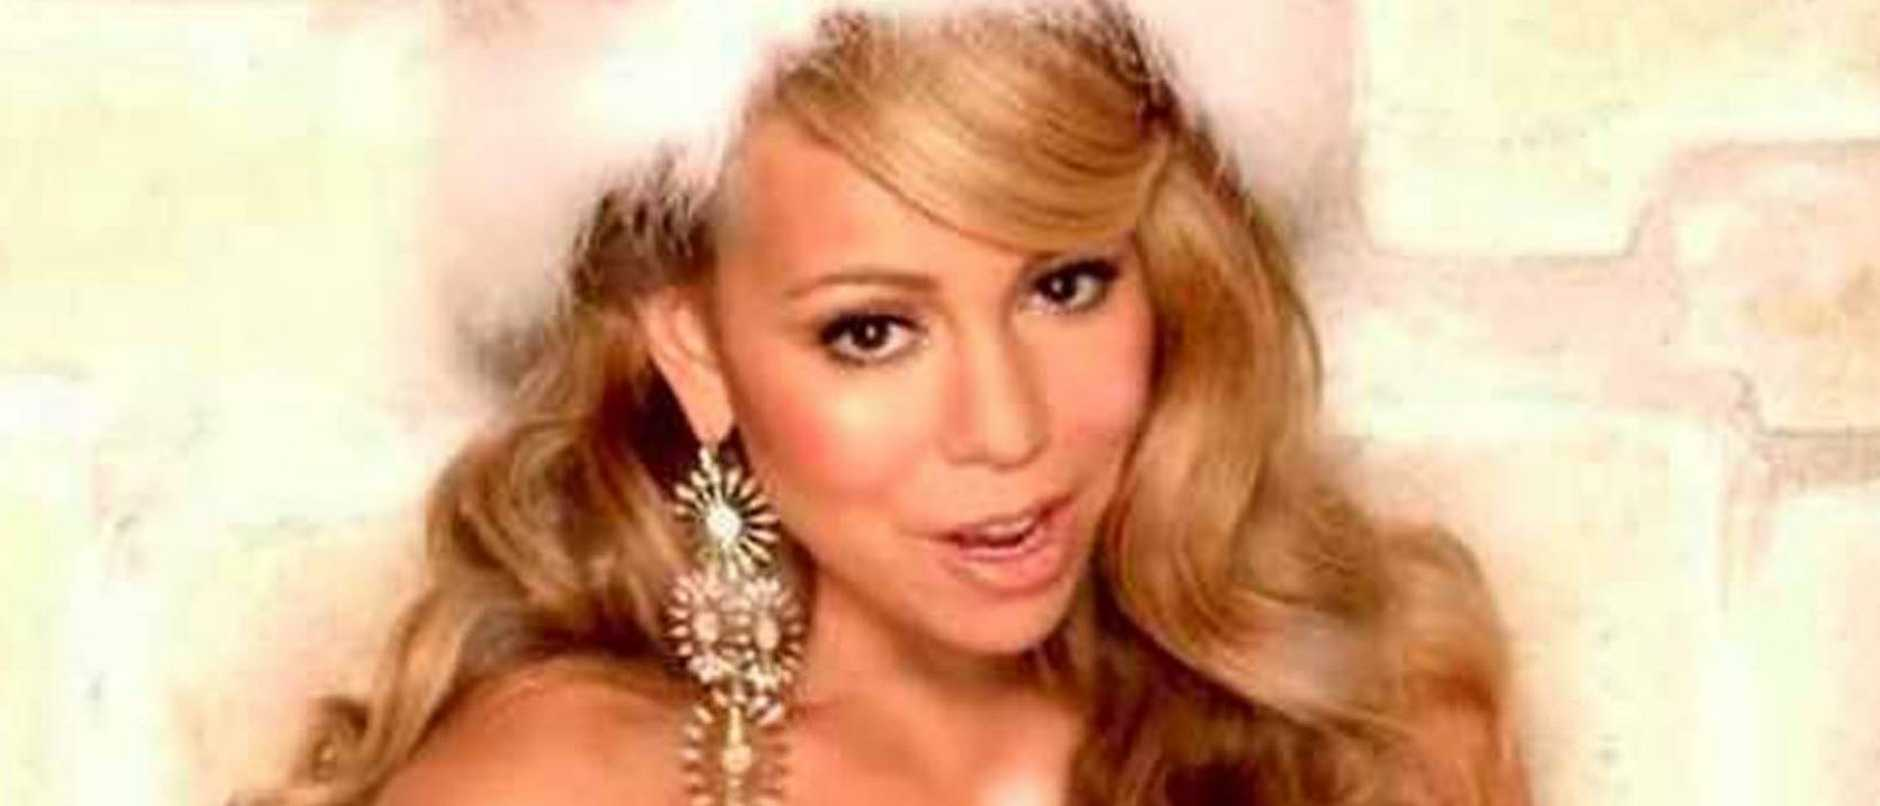 A scene from Mariah Carey's All I Want for Christmas is You music video.